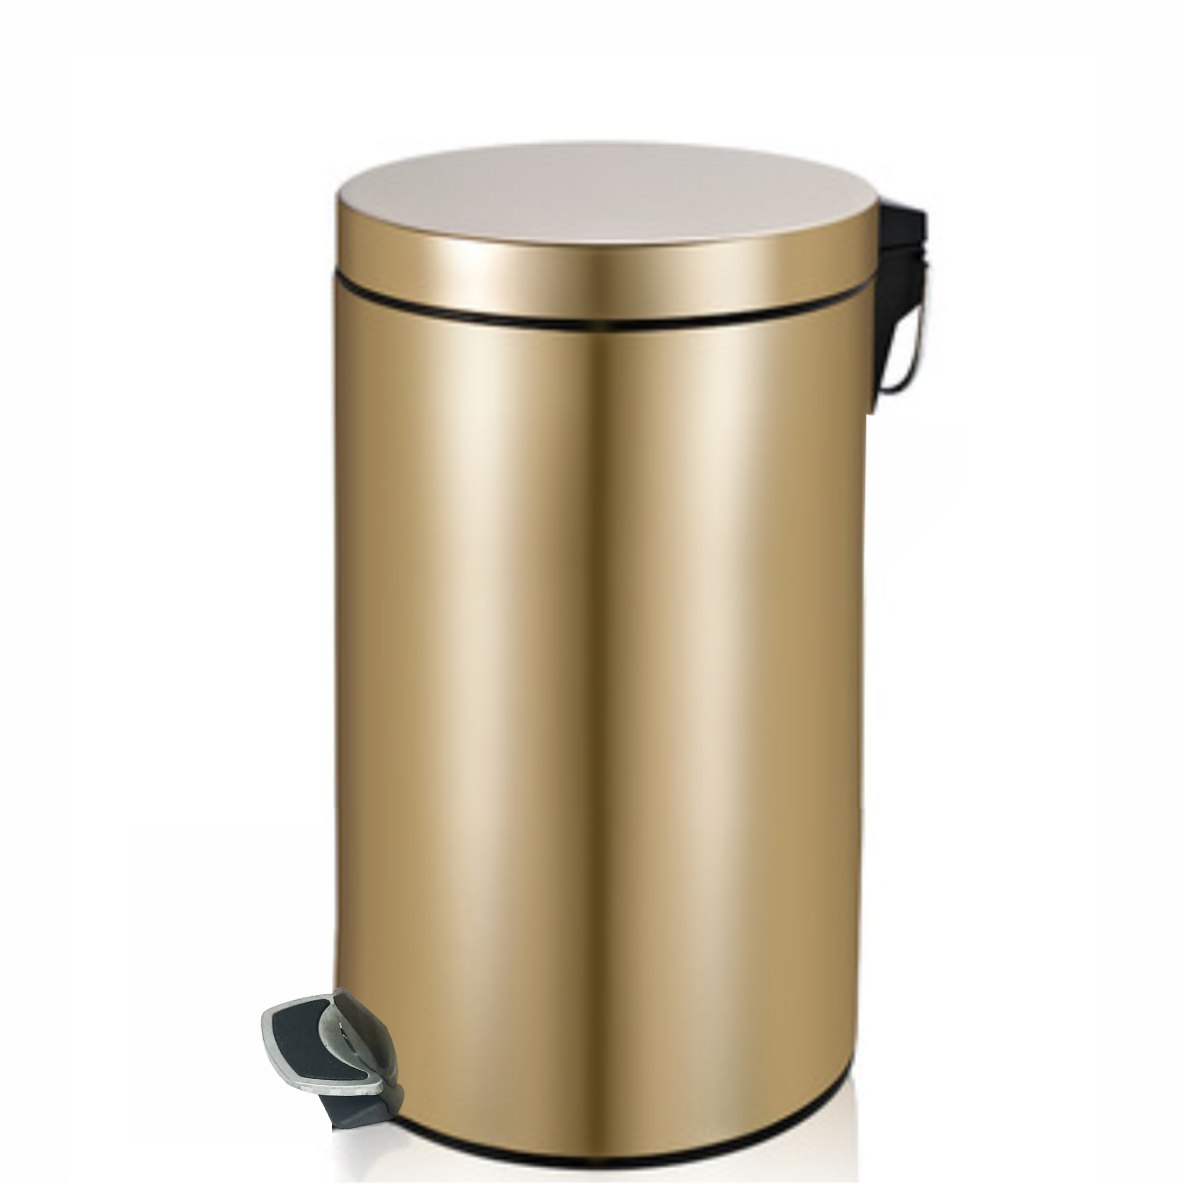 Stainless Steel Step Bin 20 Litre - Champagne Gold - product image